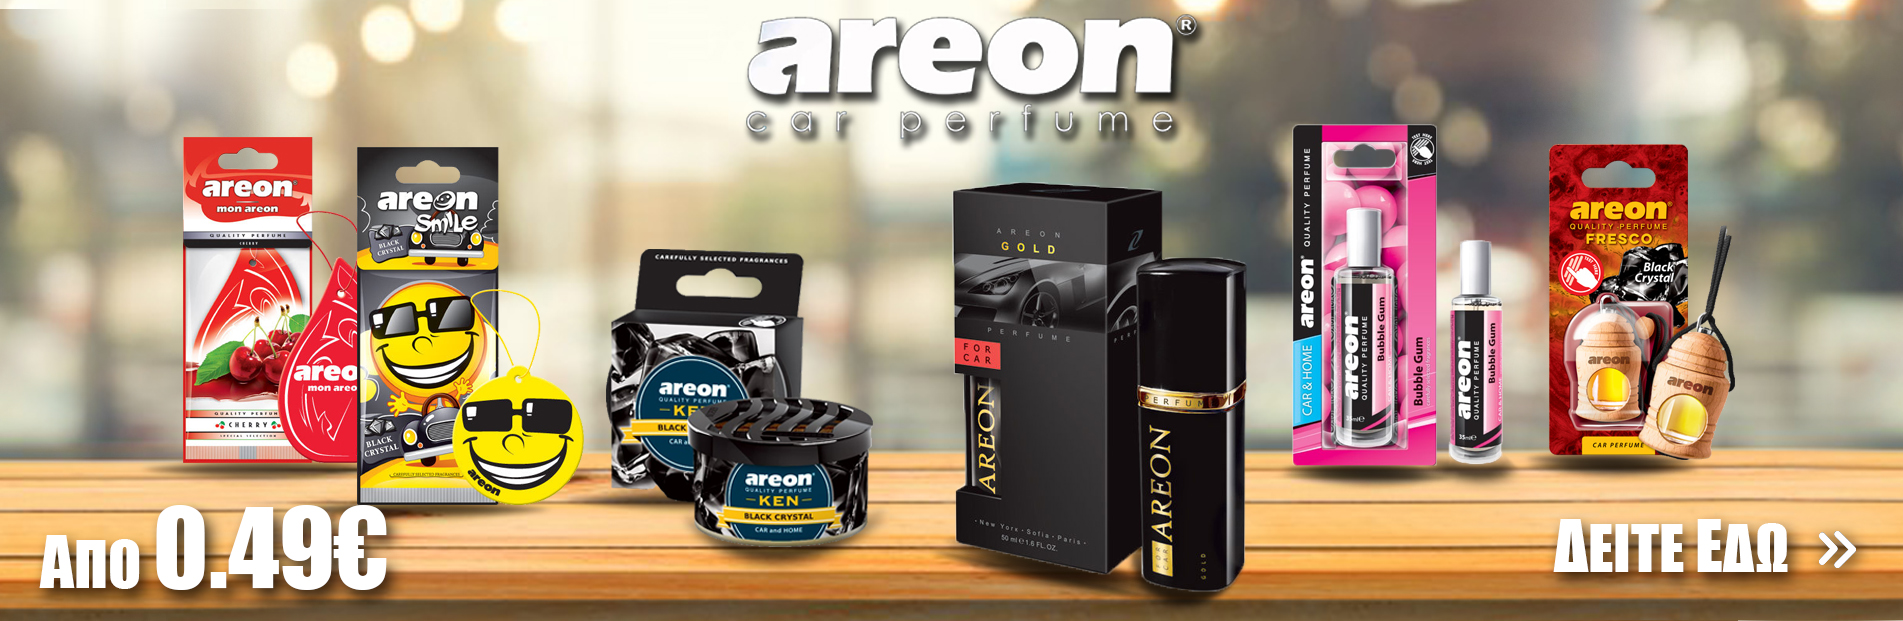 Areon Banner For Site 30